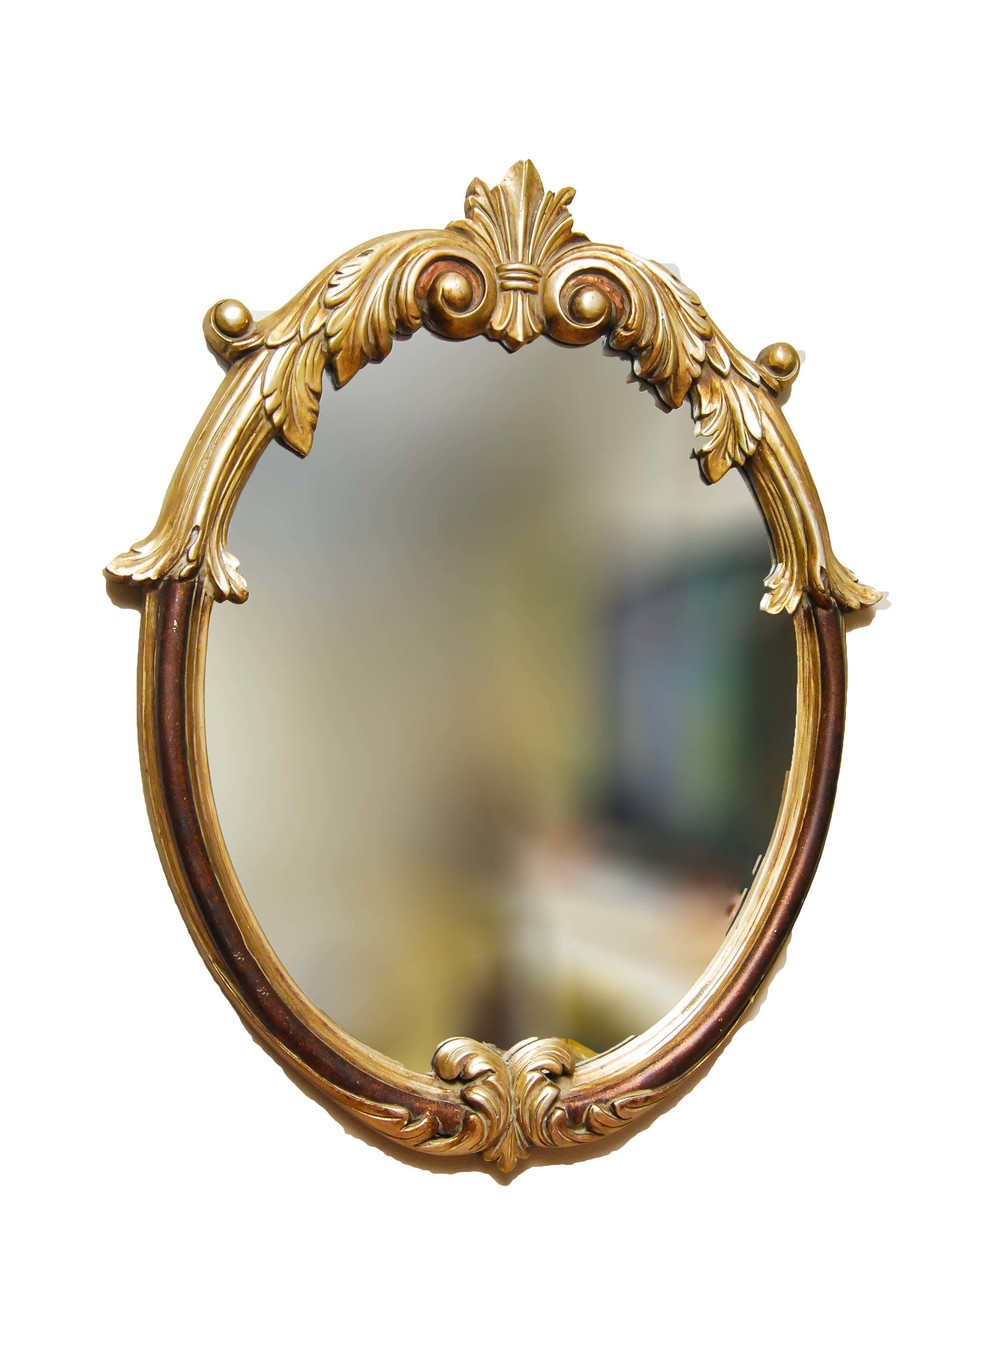 GOLD ornate mirror - medium